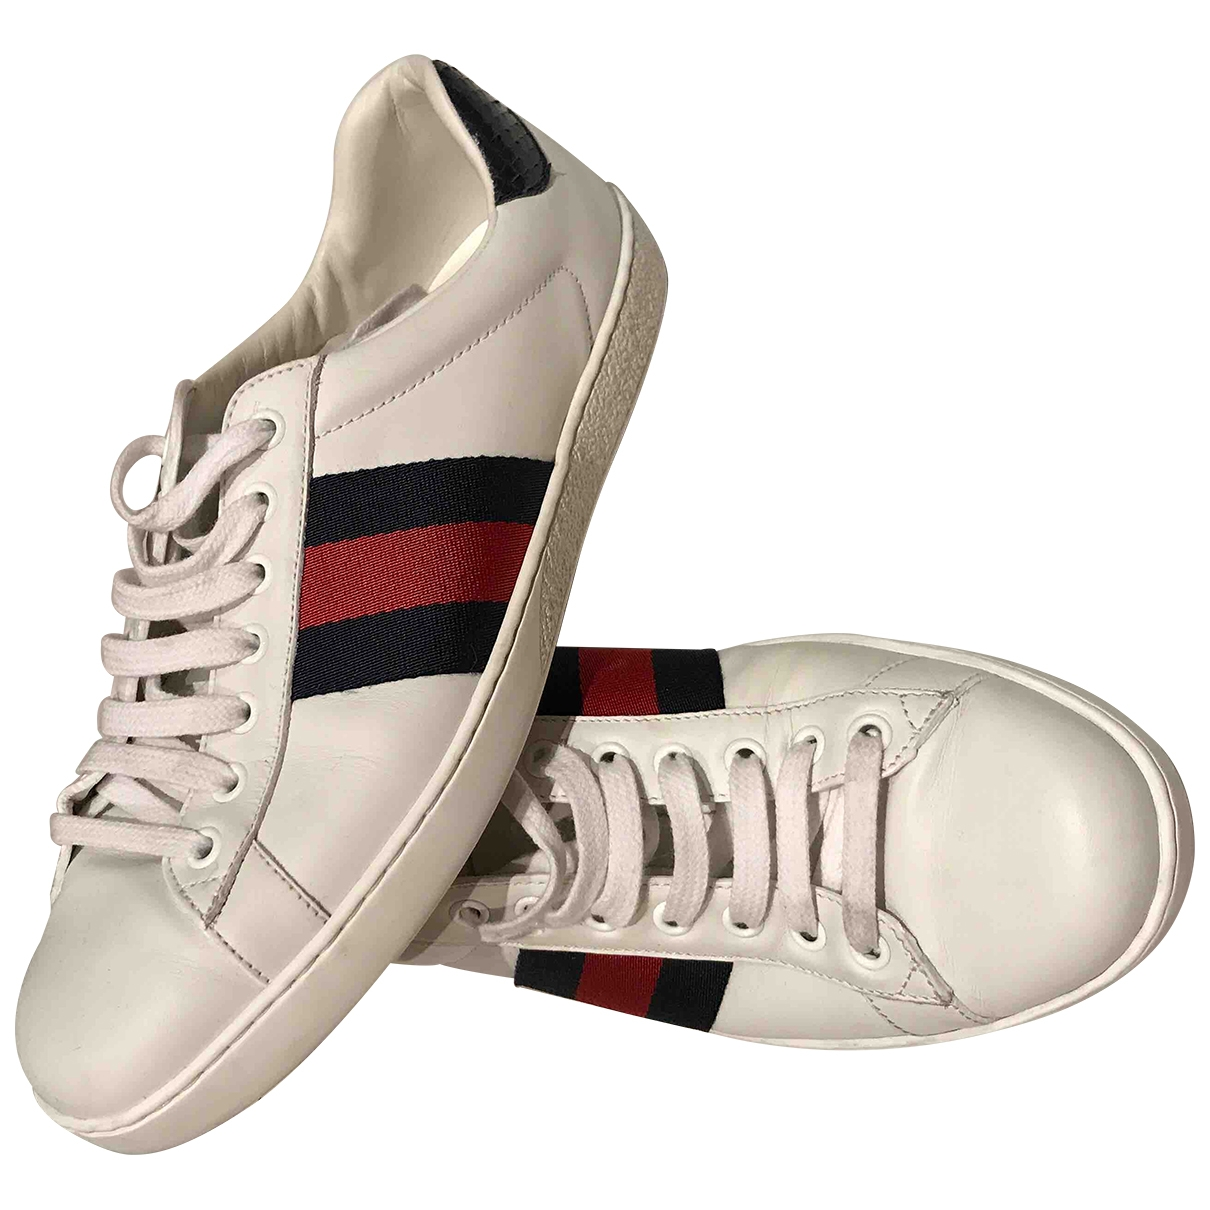 Gucci Ace White Leather Trainers for Men 6.5 UK